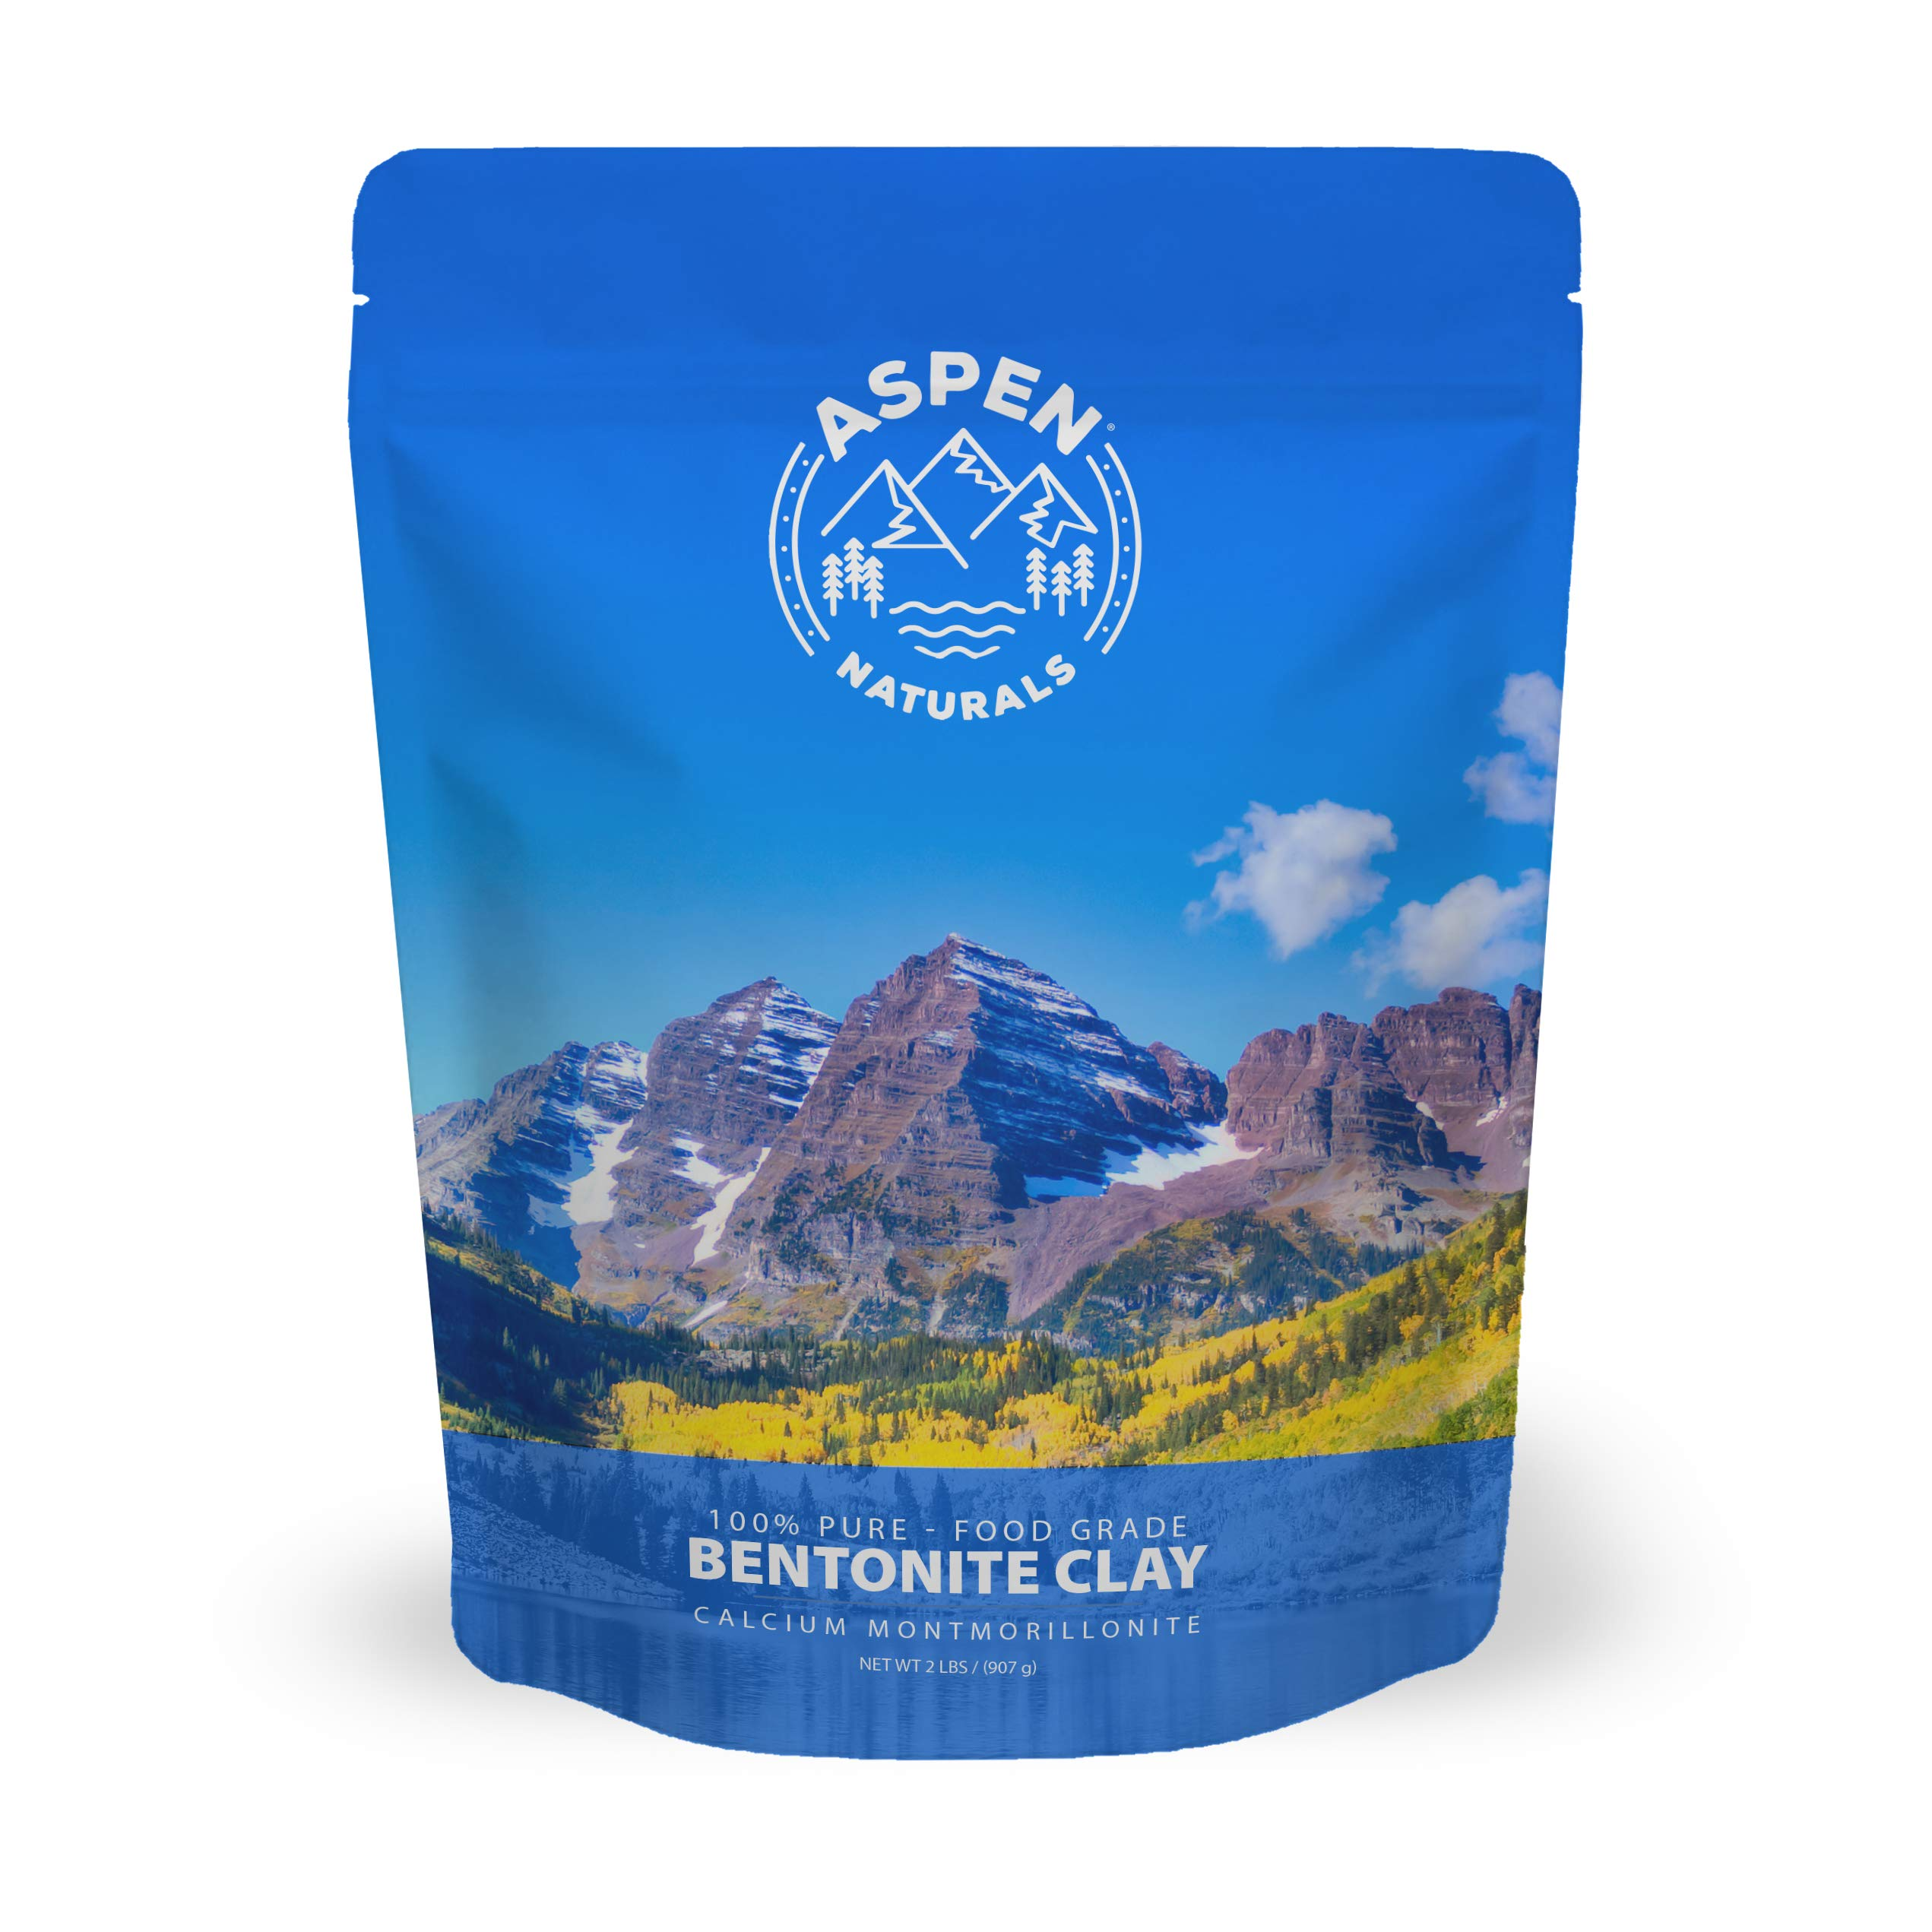 Food Grade Calcium Bentonite Clay - 2 LB Bentonite Montmorillonite Powder - Safe to Ingest for The Ultimate Internal Detox or Make a Clay Face Mask for The Best Natural Skin Healing Powder by Aspen Naturals®